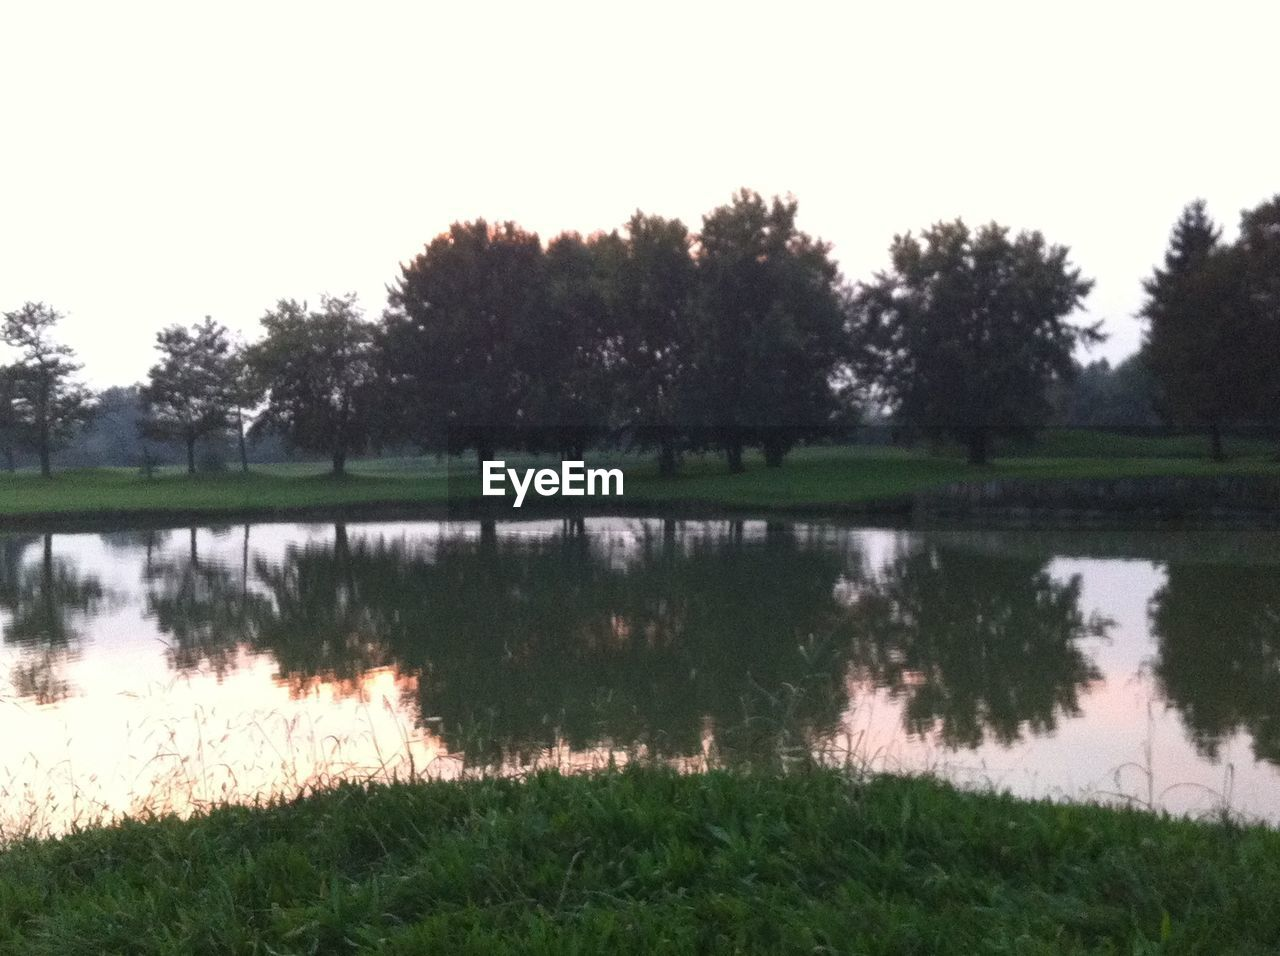 plant, grass, water, reflection, tree, tranquility, lake, tranquil scene, scenics - nature, nature, beauty in nature, sky, growth, no people, landscape, field, non-urban scene, day, green color, outdoors